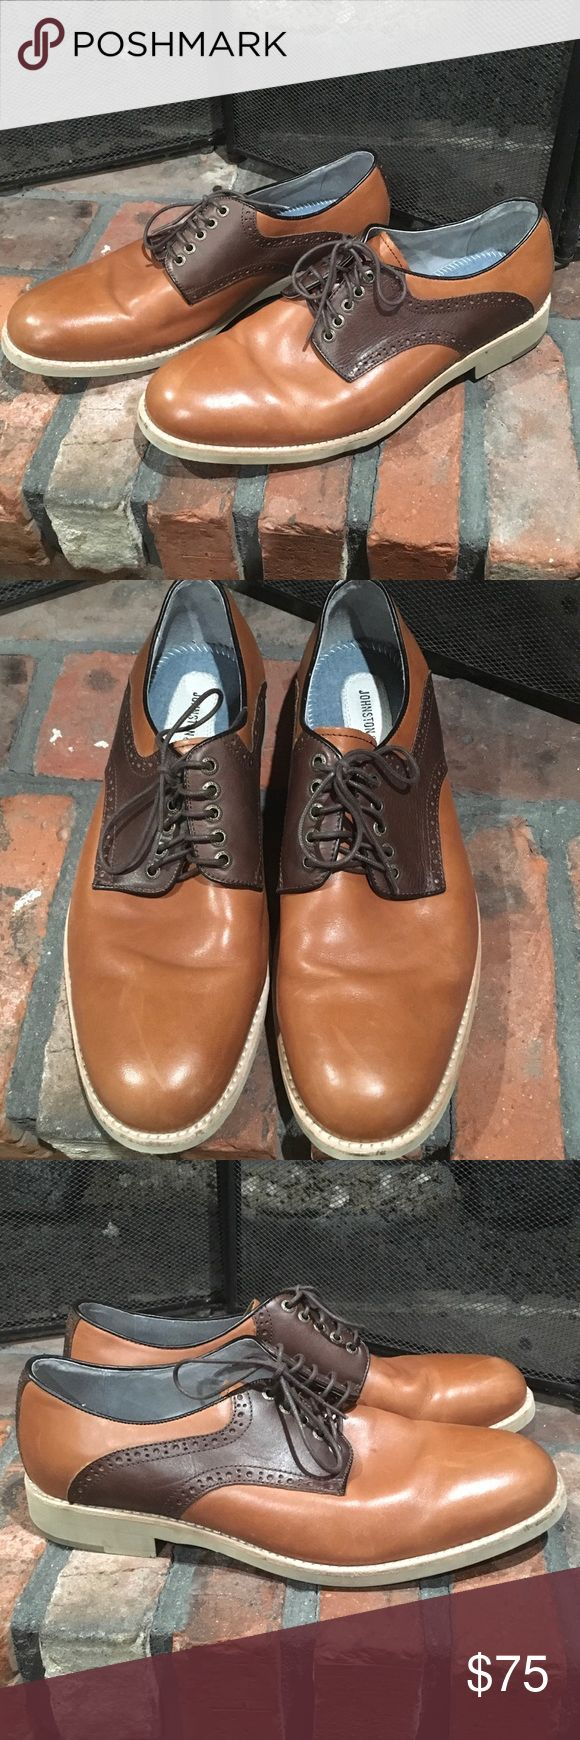 Johnston & Murphy oxford saddle shoes size 10 .5 Johnston & Murphy oxford saddle shoes size 10 .5.   Beautiful leather upper lace up oxford in excellent condition.  Perfect for work. School or any function. Johnston & Murphy Shoes Oxfords & Derbys